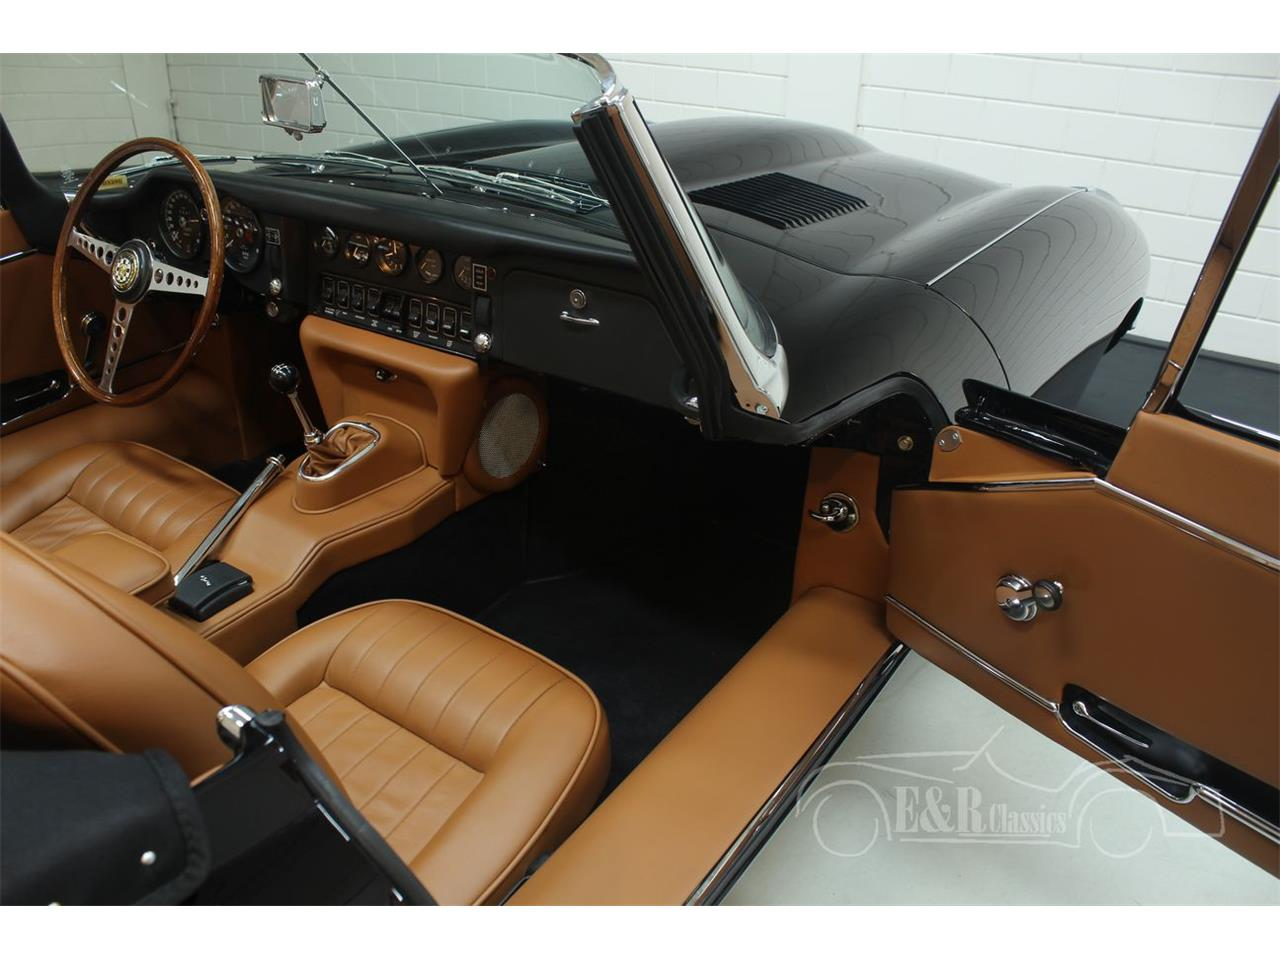 Large Picture of Classic '69 Jaguar E-Type located in noord brabant - $145,500.00 - QOU8